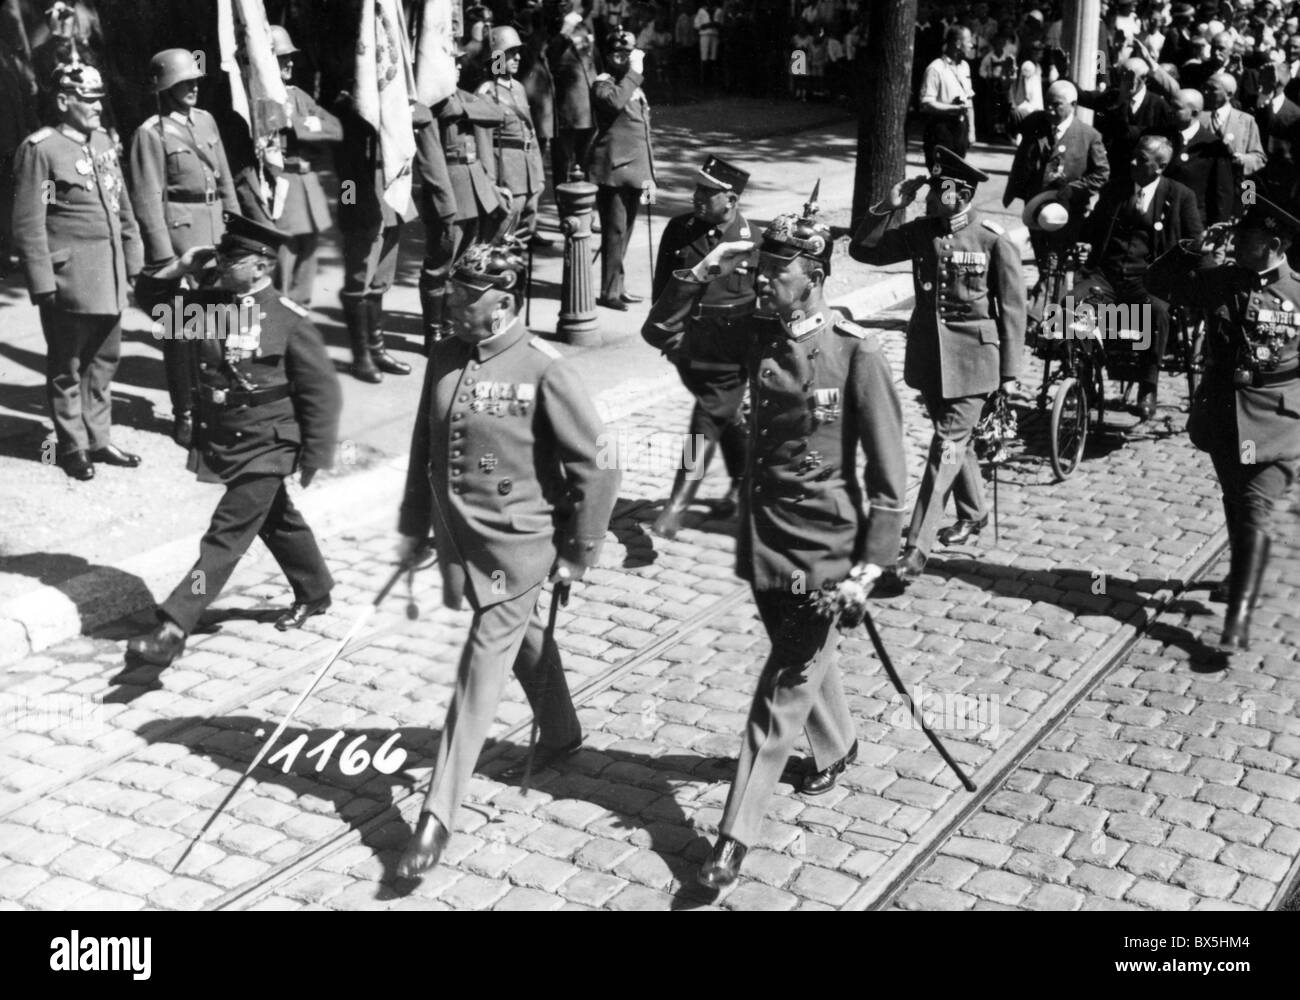 Nazism / National Socialism, parades, German World War One veterans during a parade, 1930s, Additional-Rights-Clearences - Stock Image